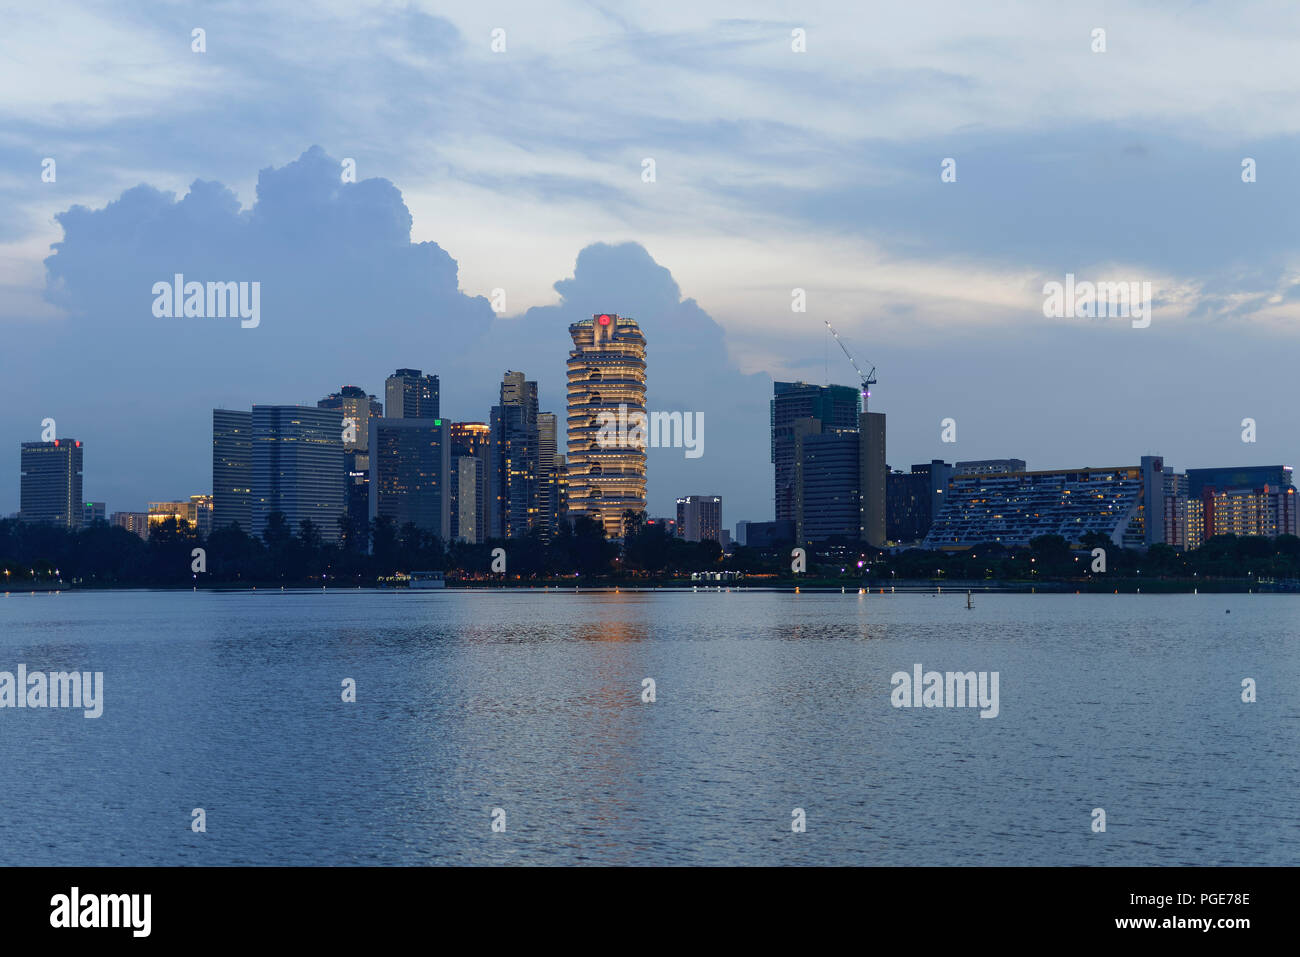 Singapore  - June 23, 2018: Sunset over Singapore River with city in the back - Stock Image